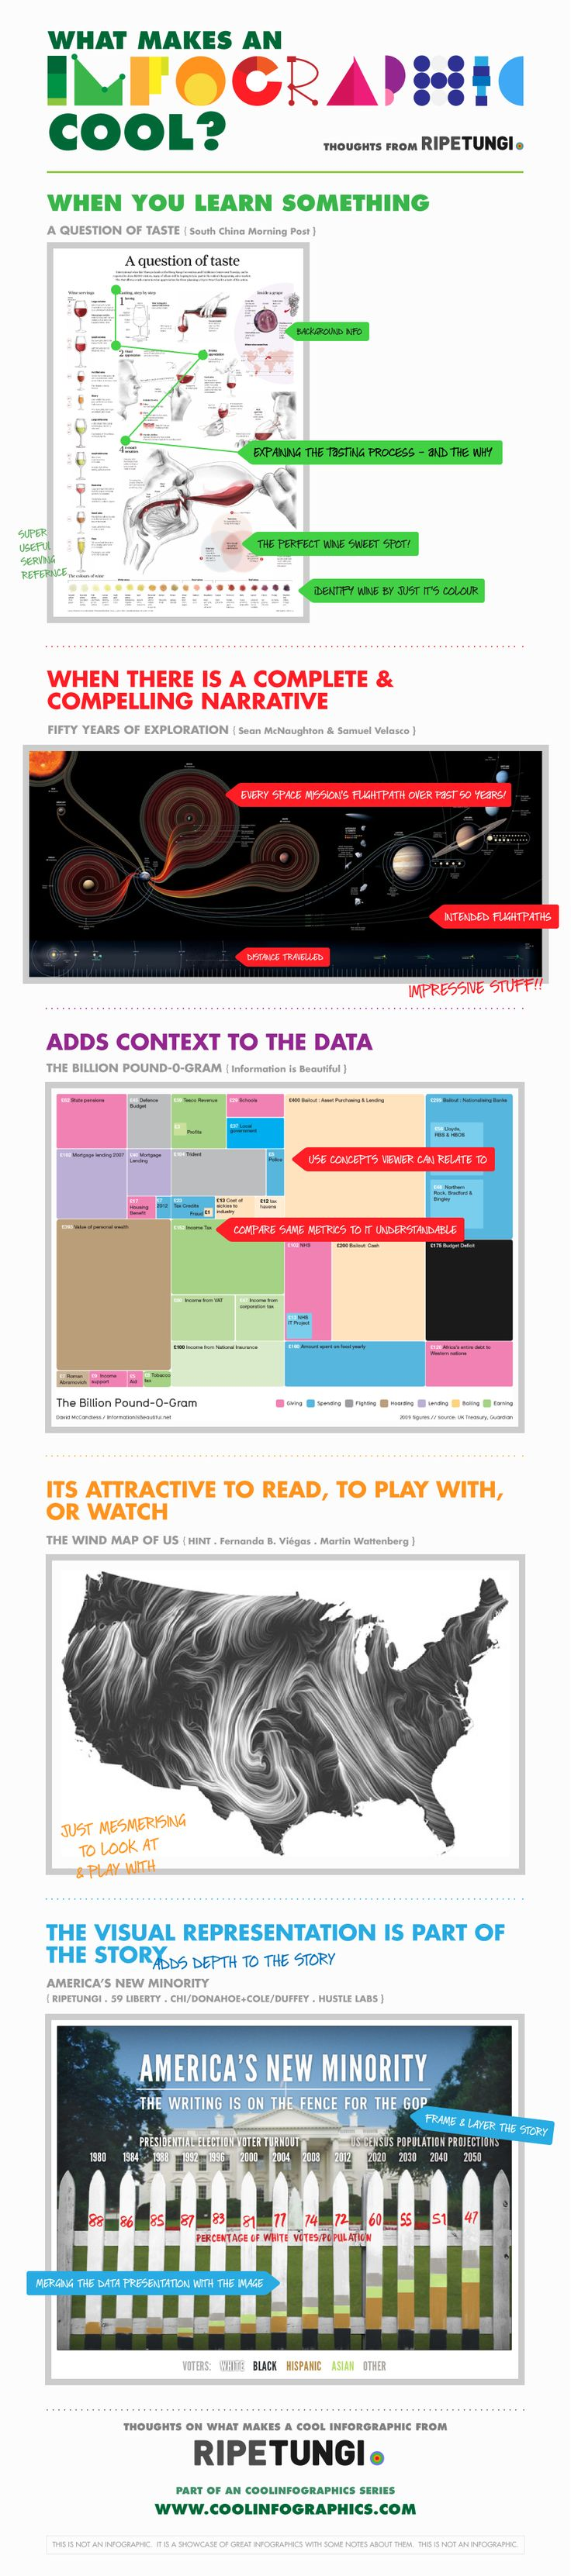 WHAT MAKES AN INFOGRAPHIC COOL? - http://www.coolinfoimages.com/infographics/what-makes-an-infographic-cool/